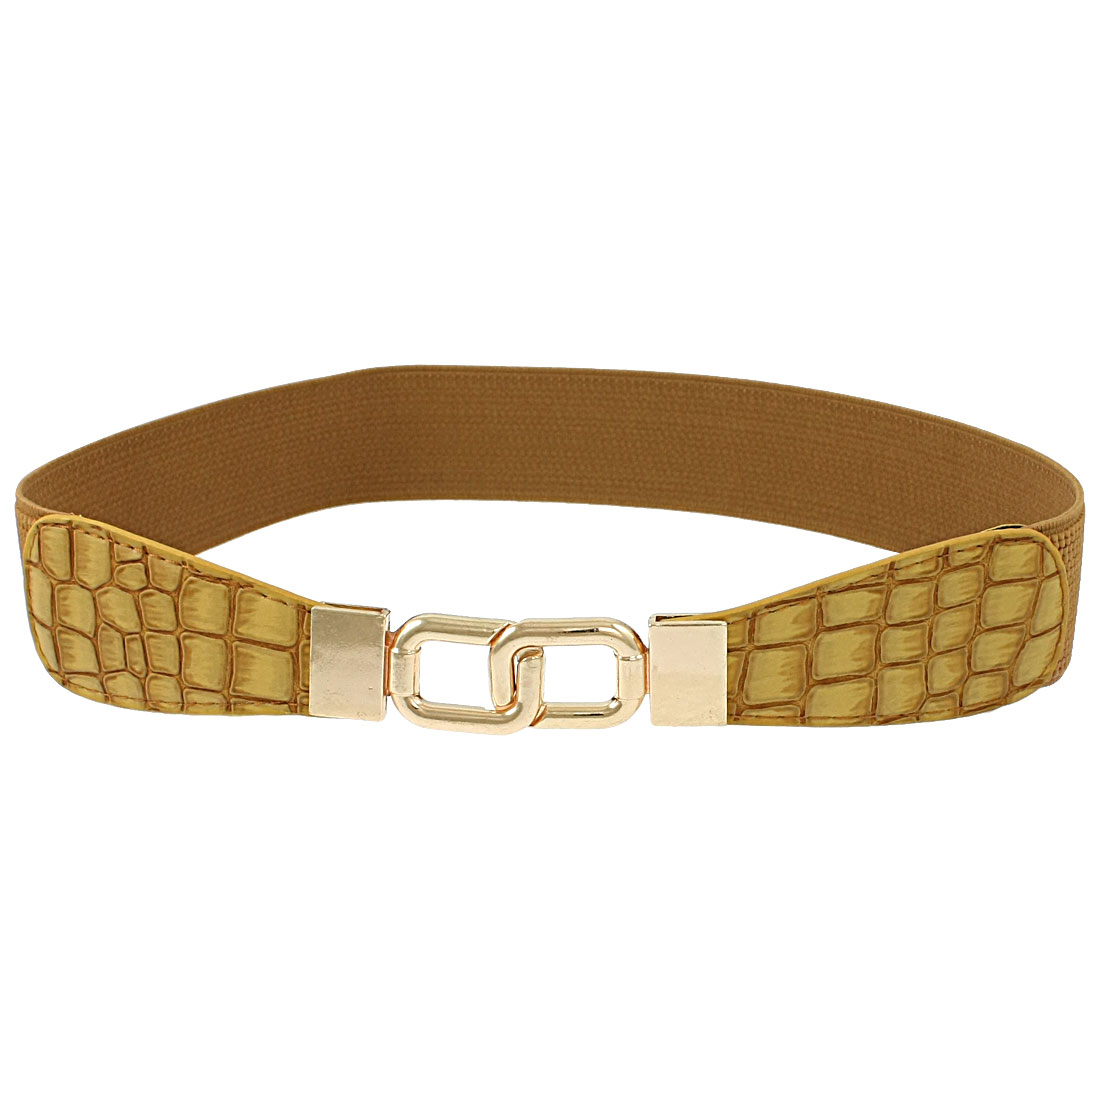 Crocodile Pattern Interlocking Buckle Cinch Band Waist Belt Brown